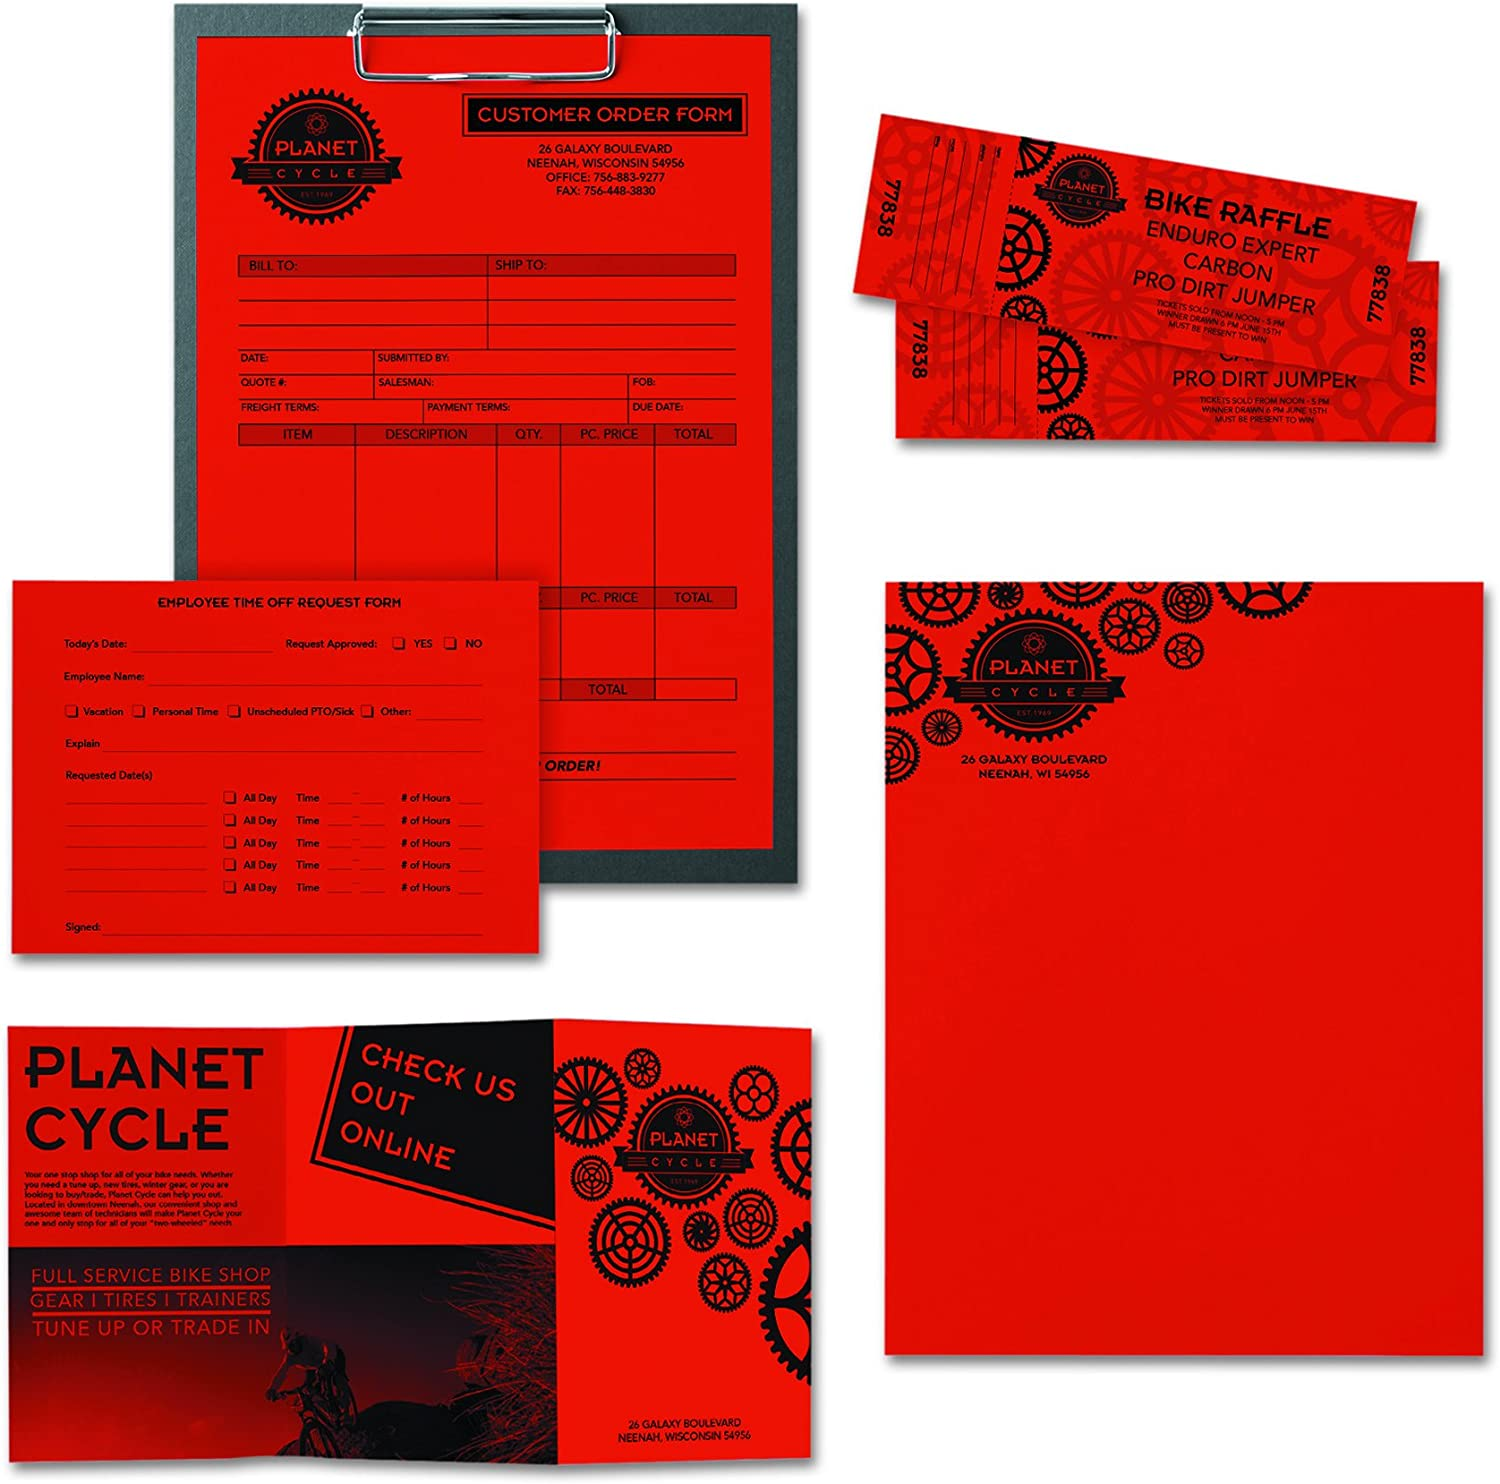 8 1//2 x 11,Re-Entry Red,500 Sheets//Ream 24lb Neenah Astrobrights Colored Paper